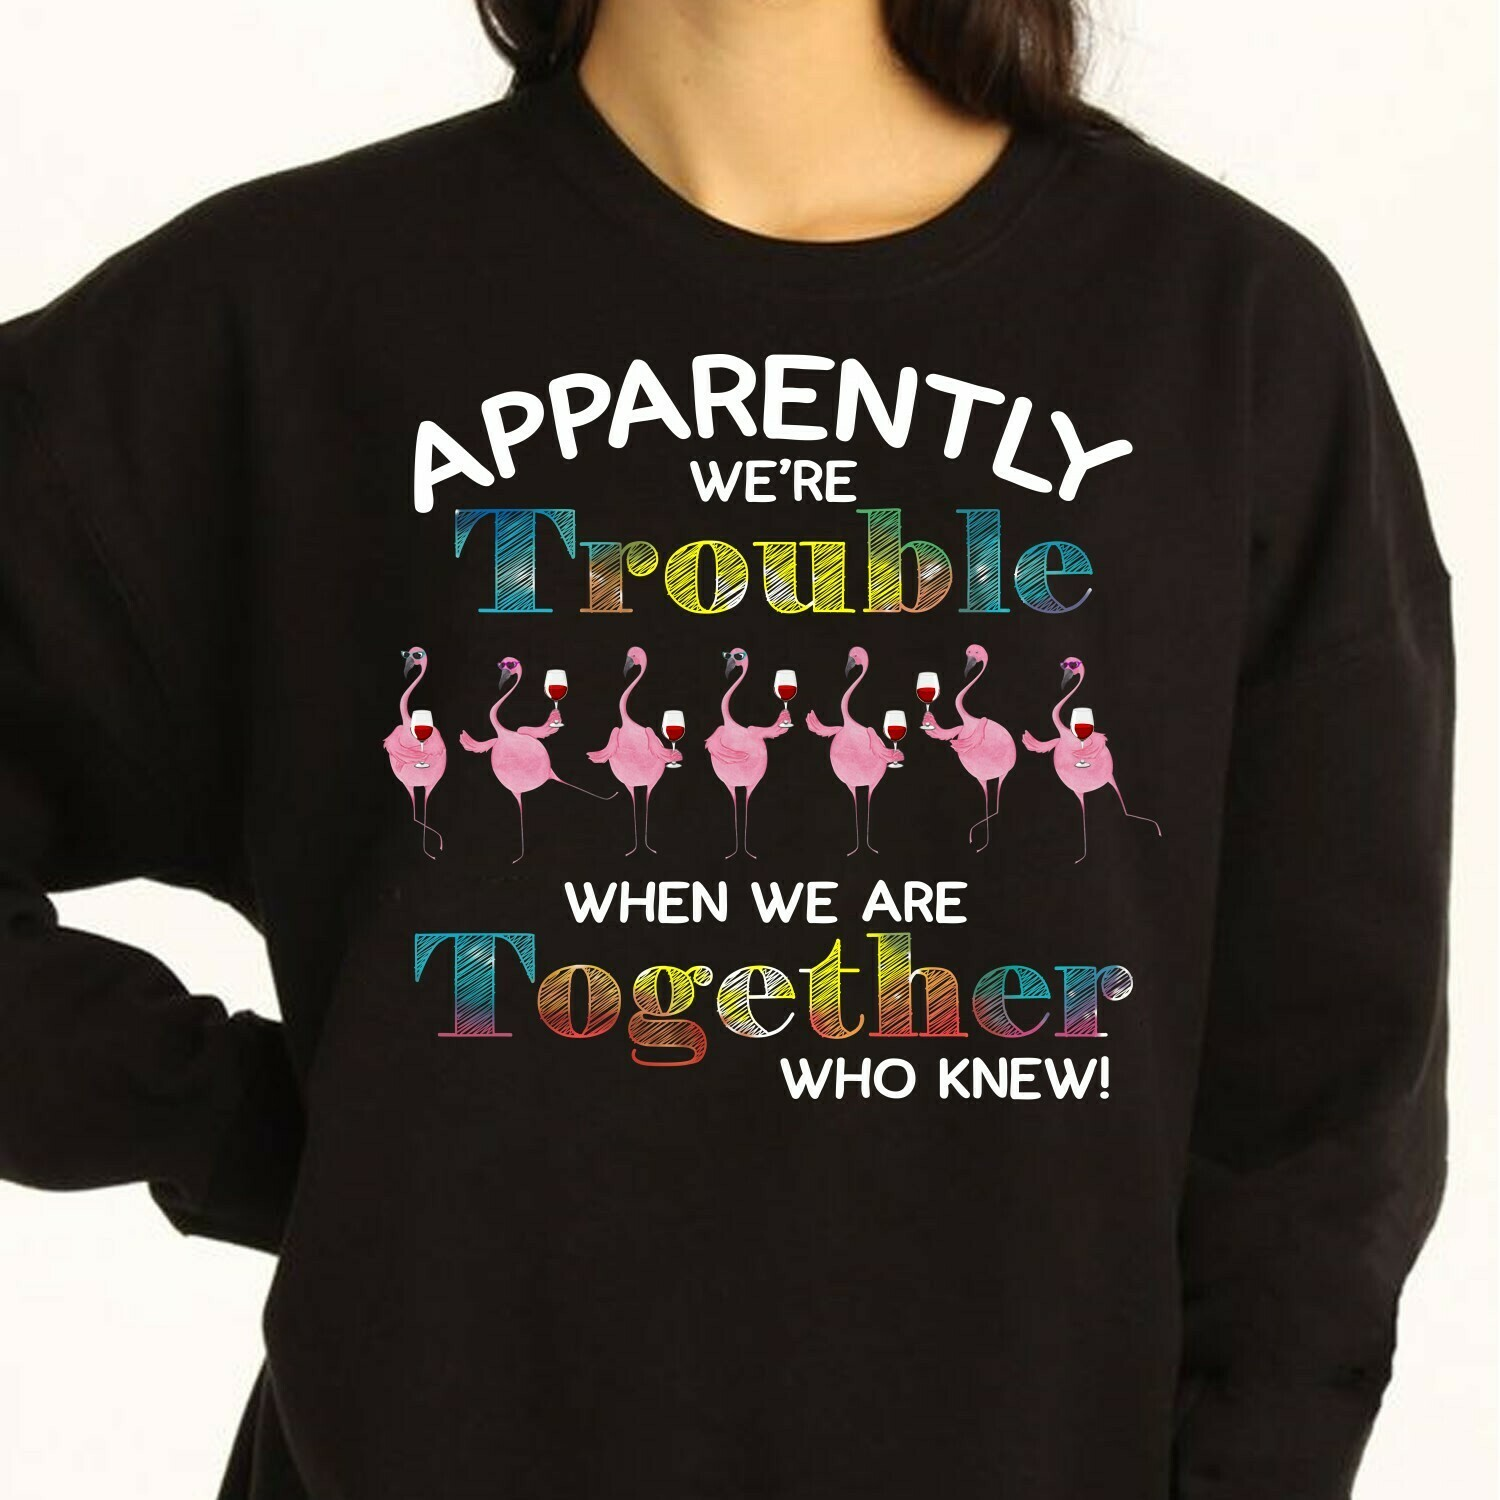 Flamingo71 Wine Glasses Apparently We Are Trouble Together Who Knew Funny Woman Lady Flamingo Family Vacation Friend Team Party Gift T-Shirt Long Sleeve Sweatshirt Hoodie Jolly Family Gifts